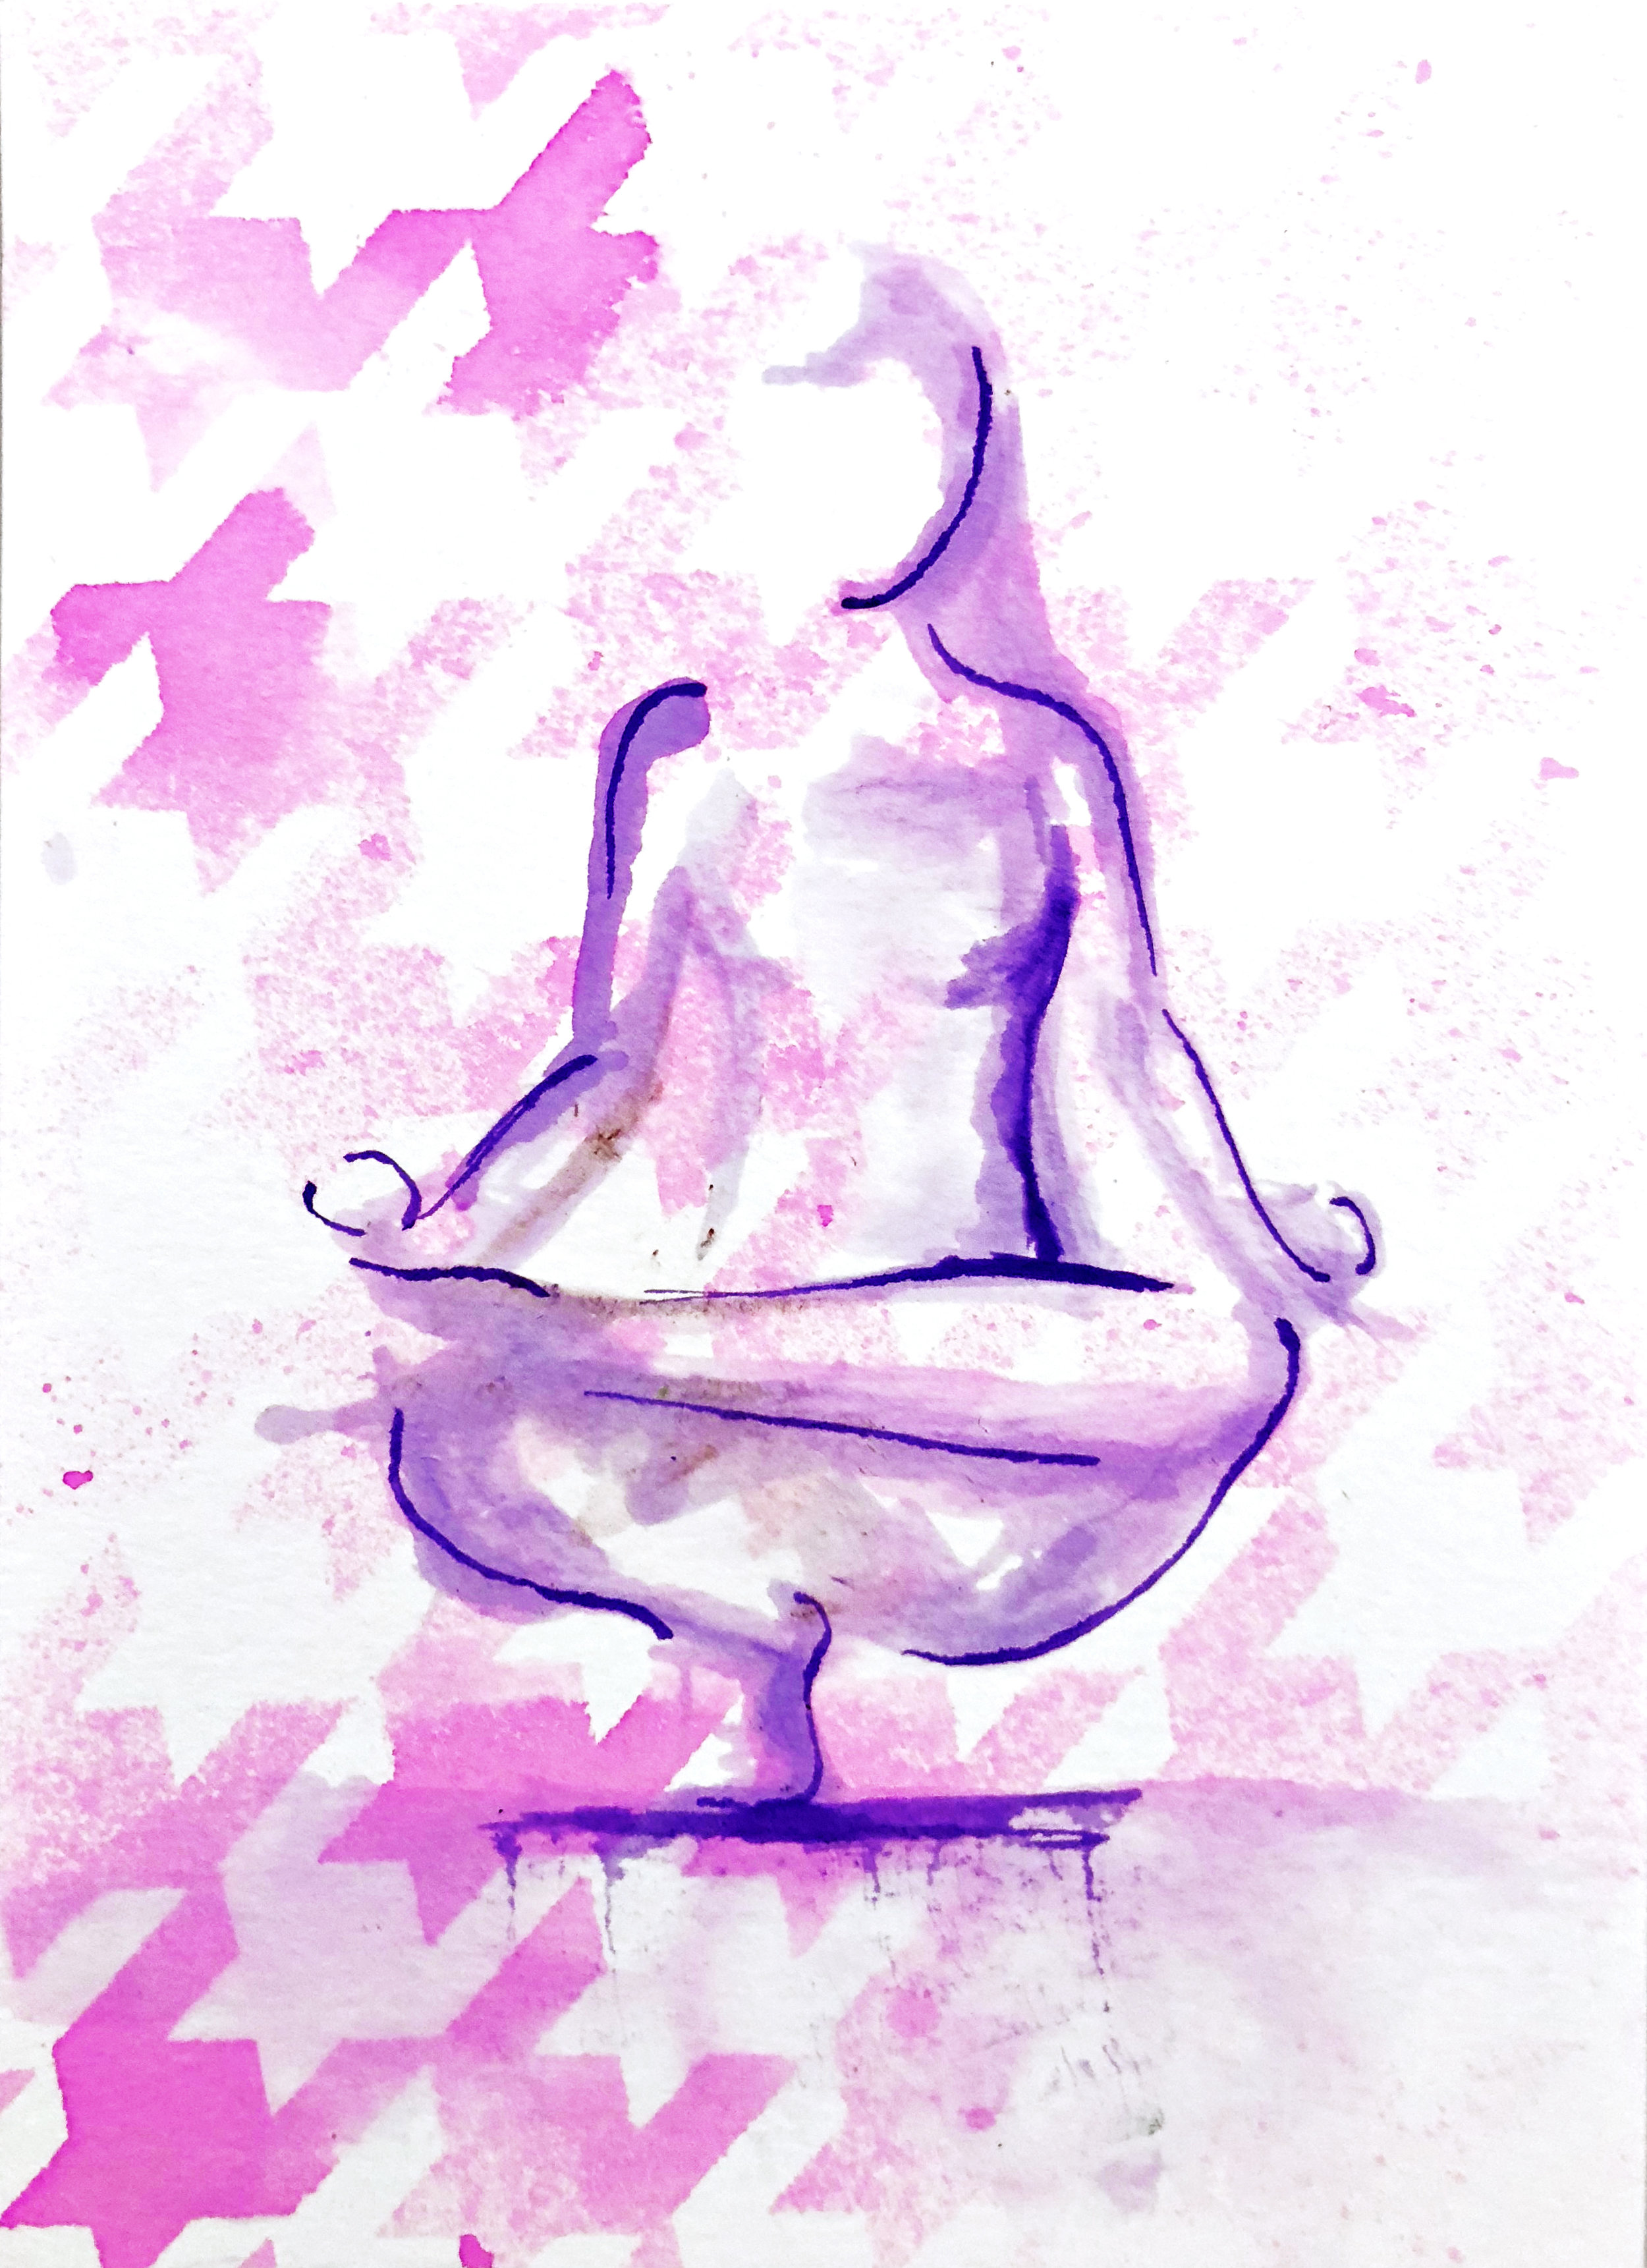 Watercolor on paper, painted with palette knives, yoga pose tip toe pose.